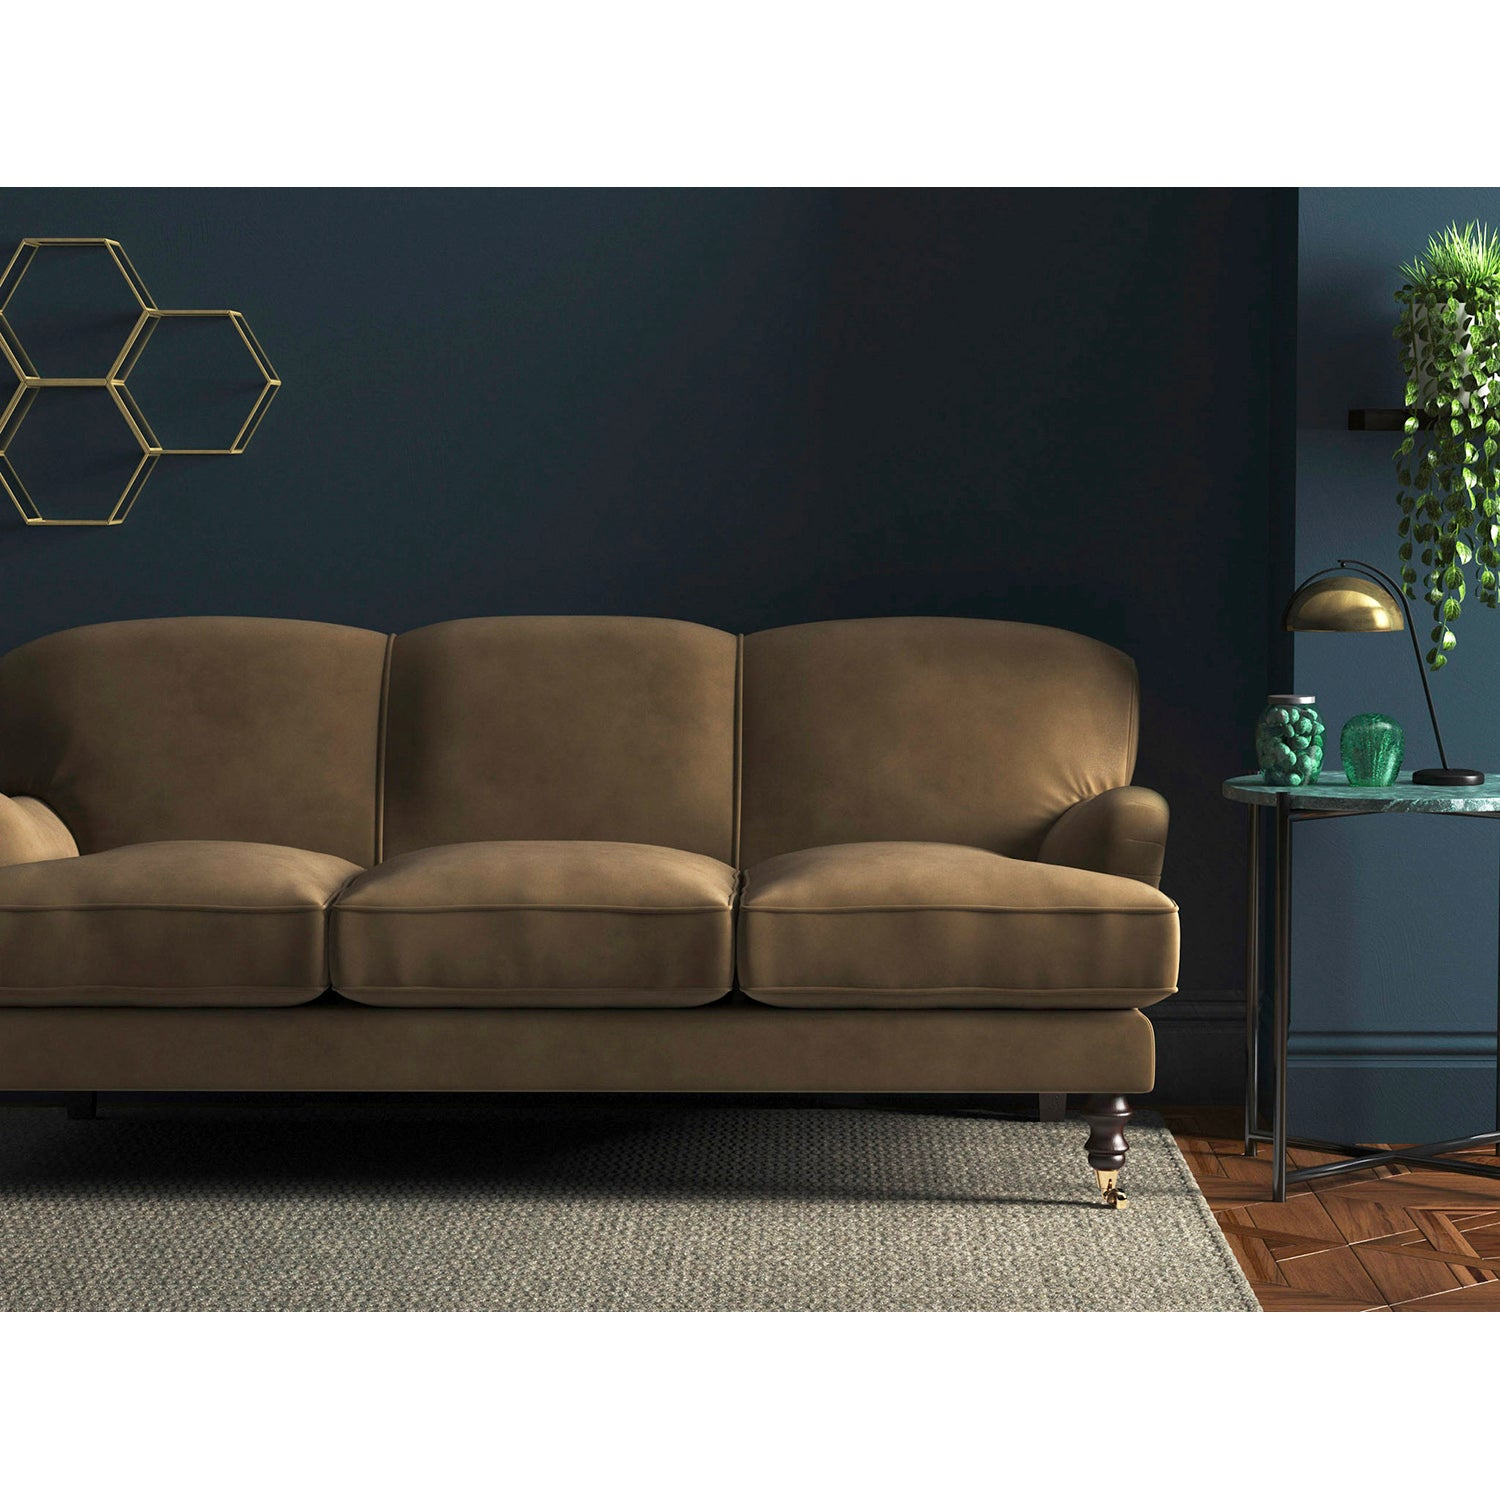 Sofa in a luxury light brown velvet upholstery fabric with a stain resistant finish